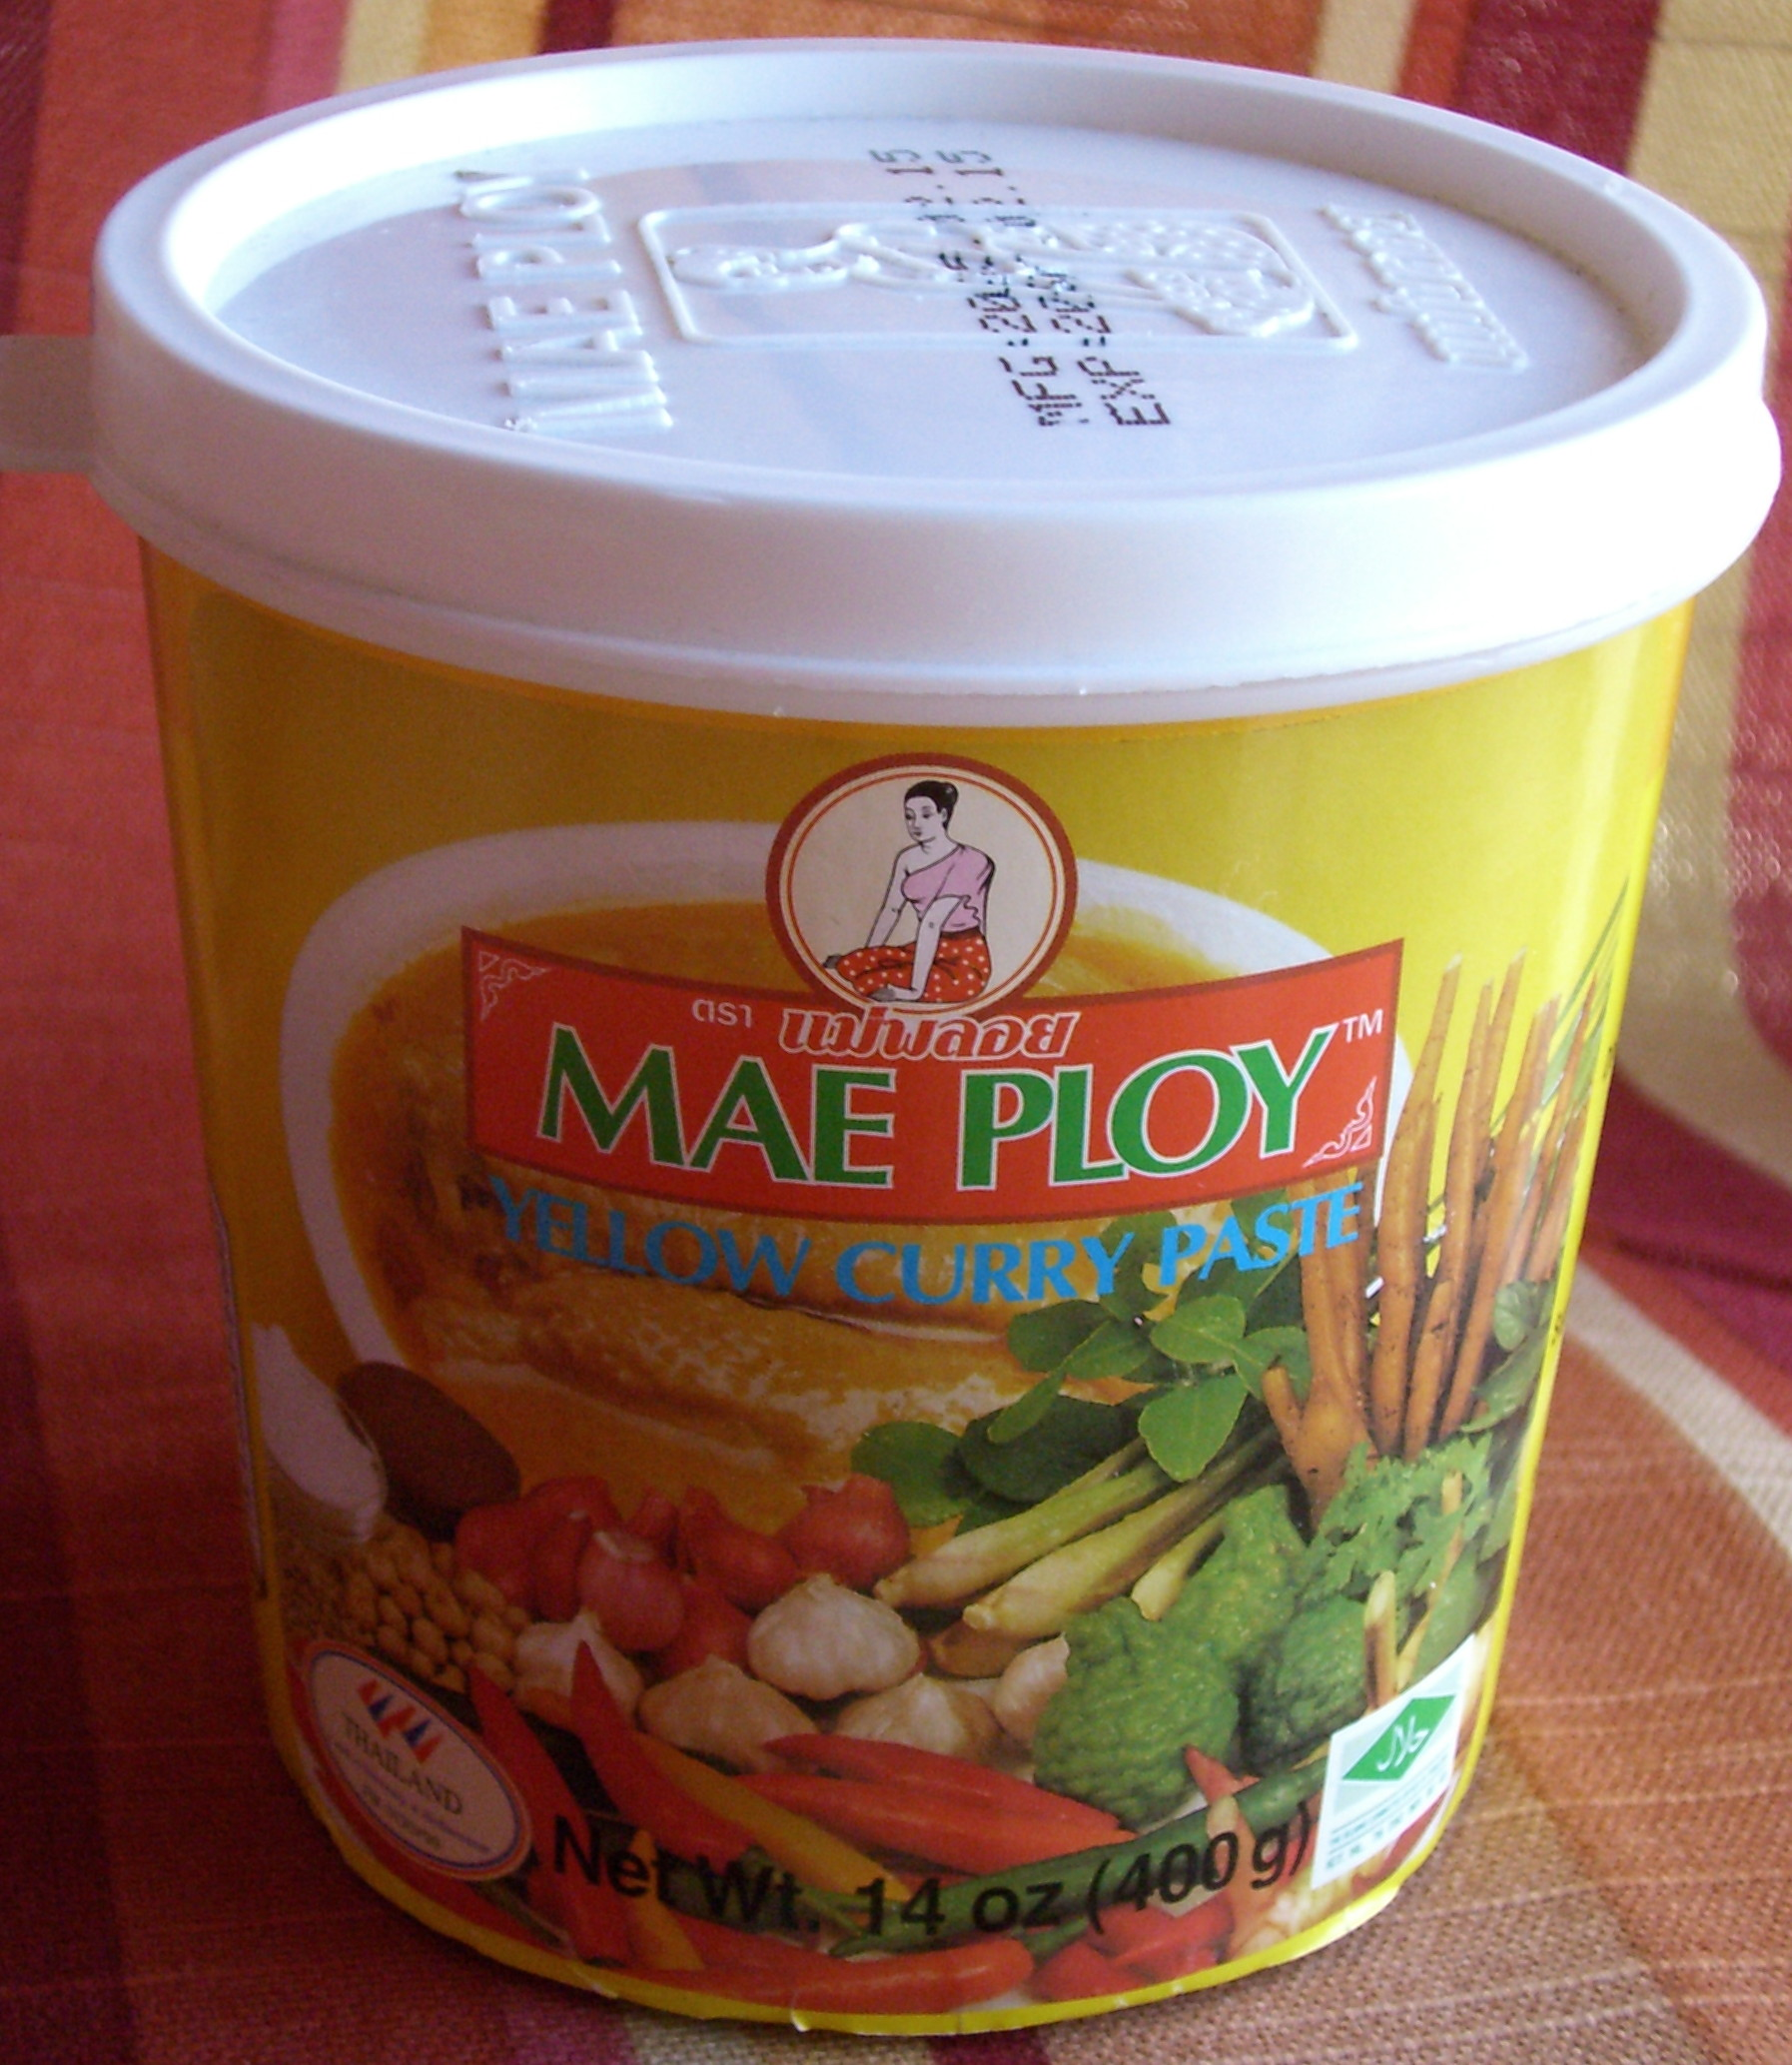 ... ploy yellow curry paste if you ve ever spent $ 6 on a bottle of curry